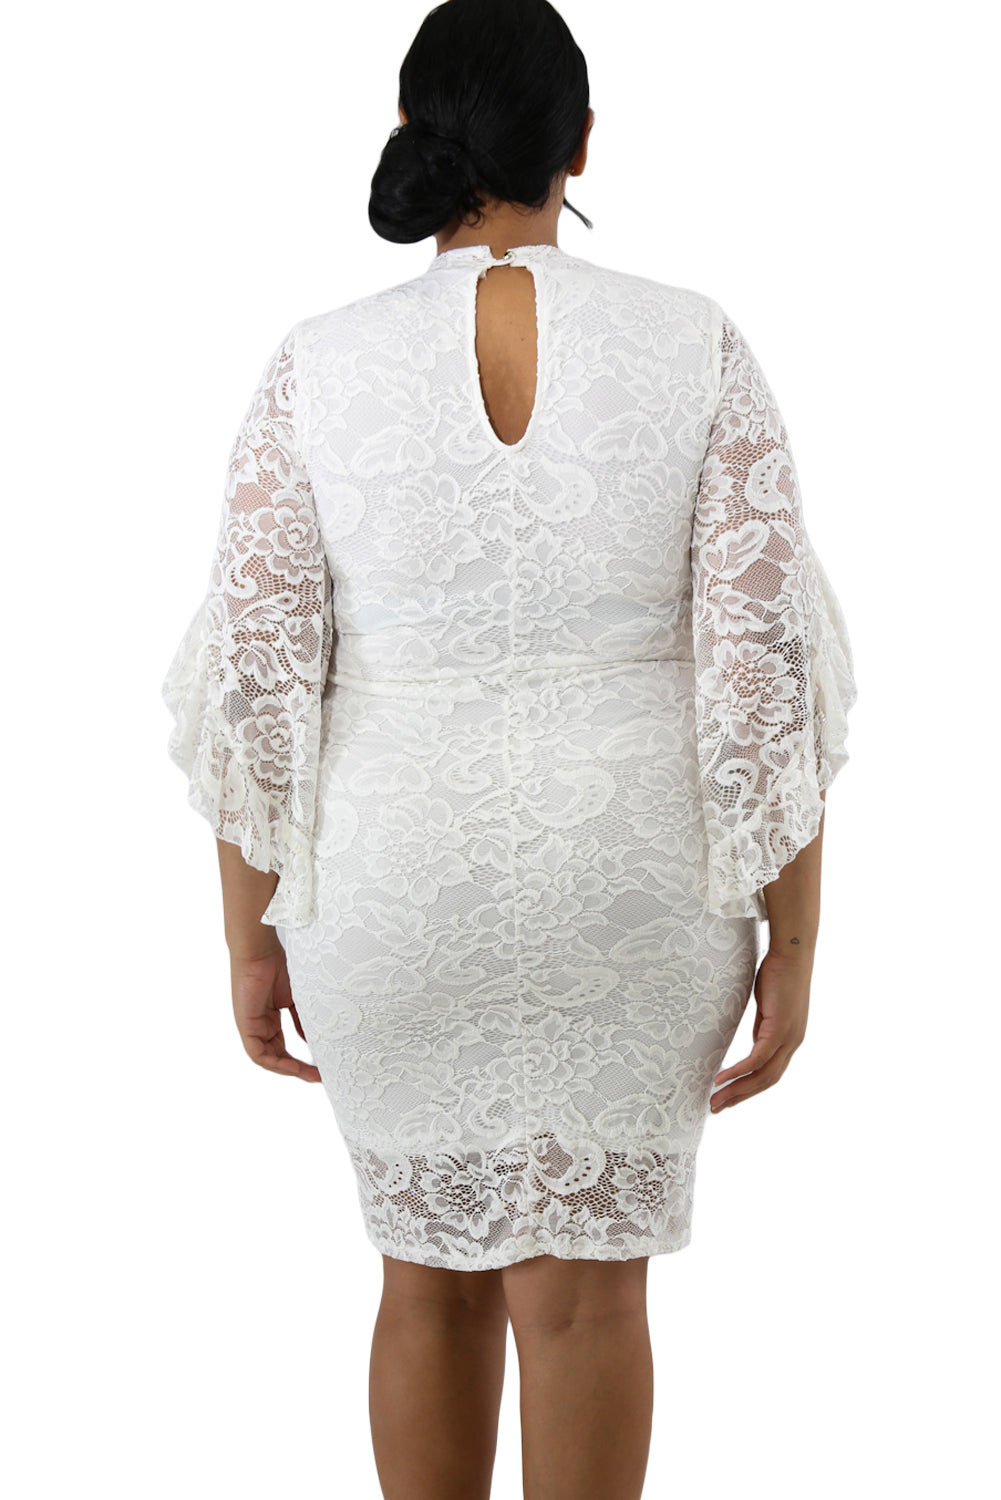 White Lace Flare Bells Bodycon Plus Size Dress LAVELIQ - Laveliqus